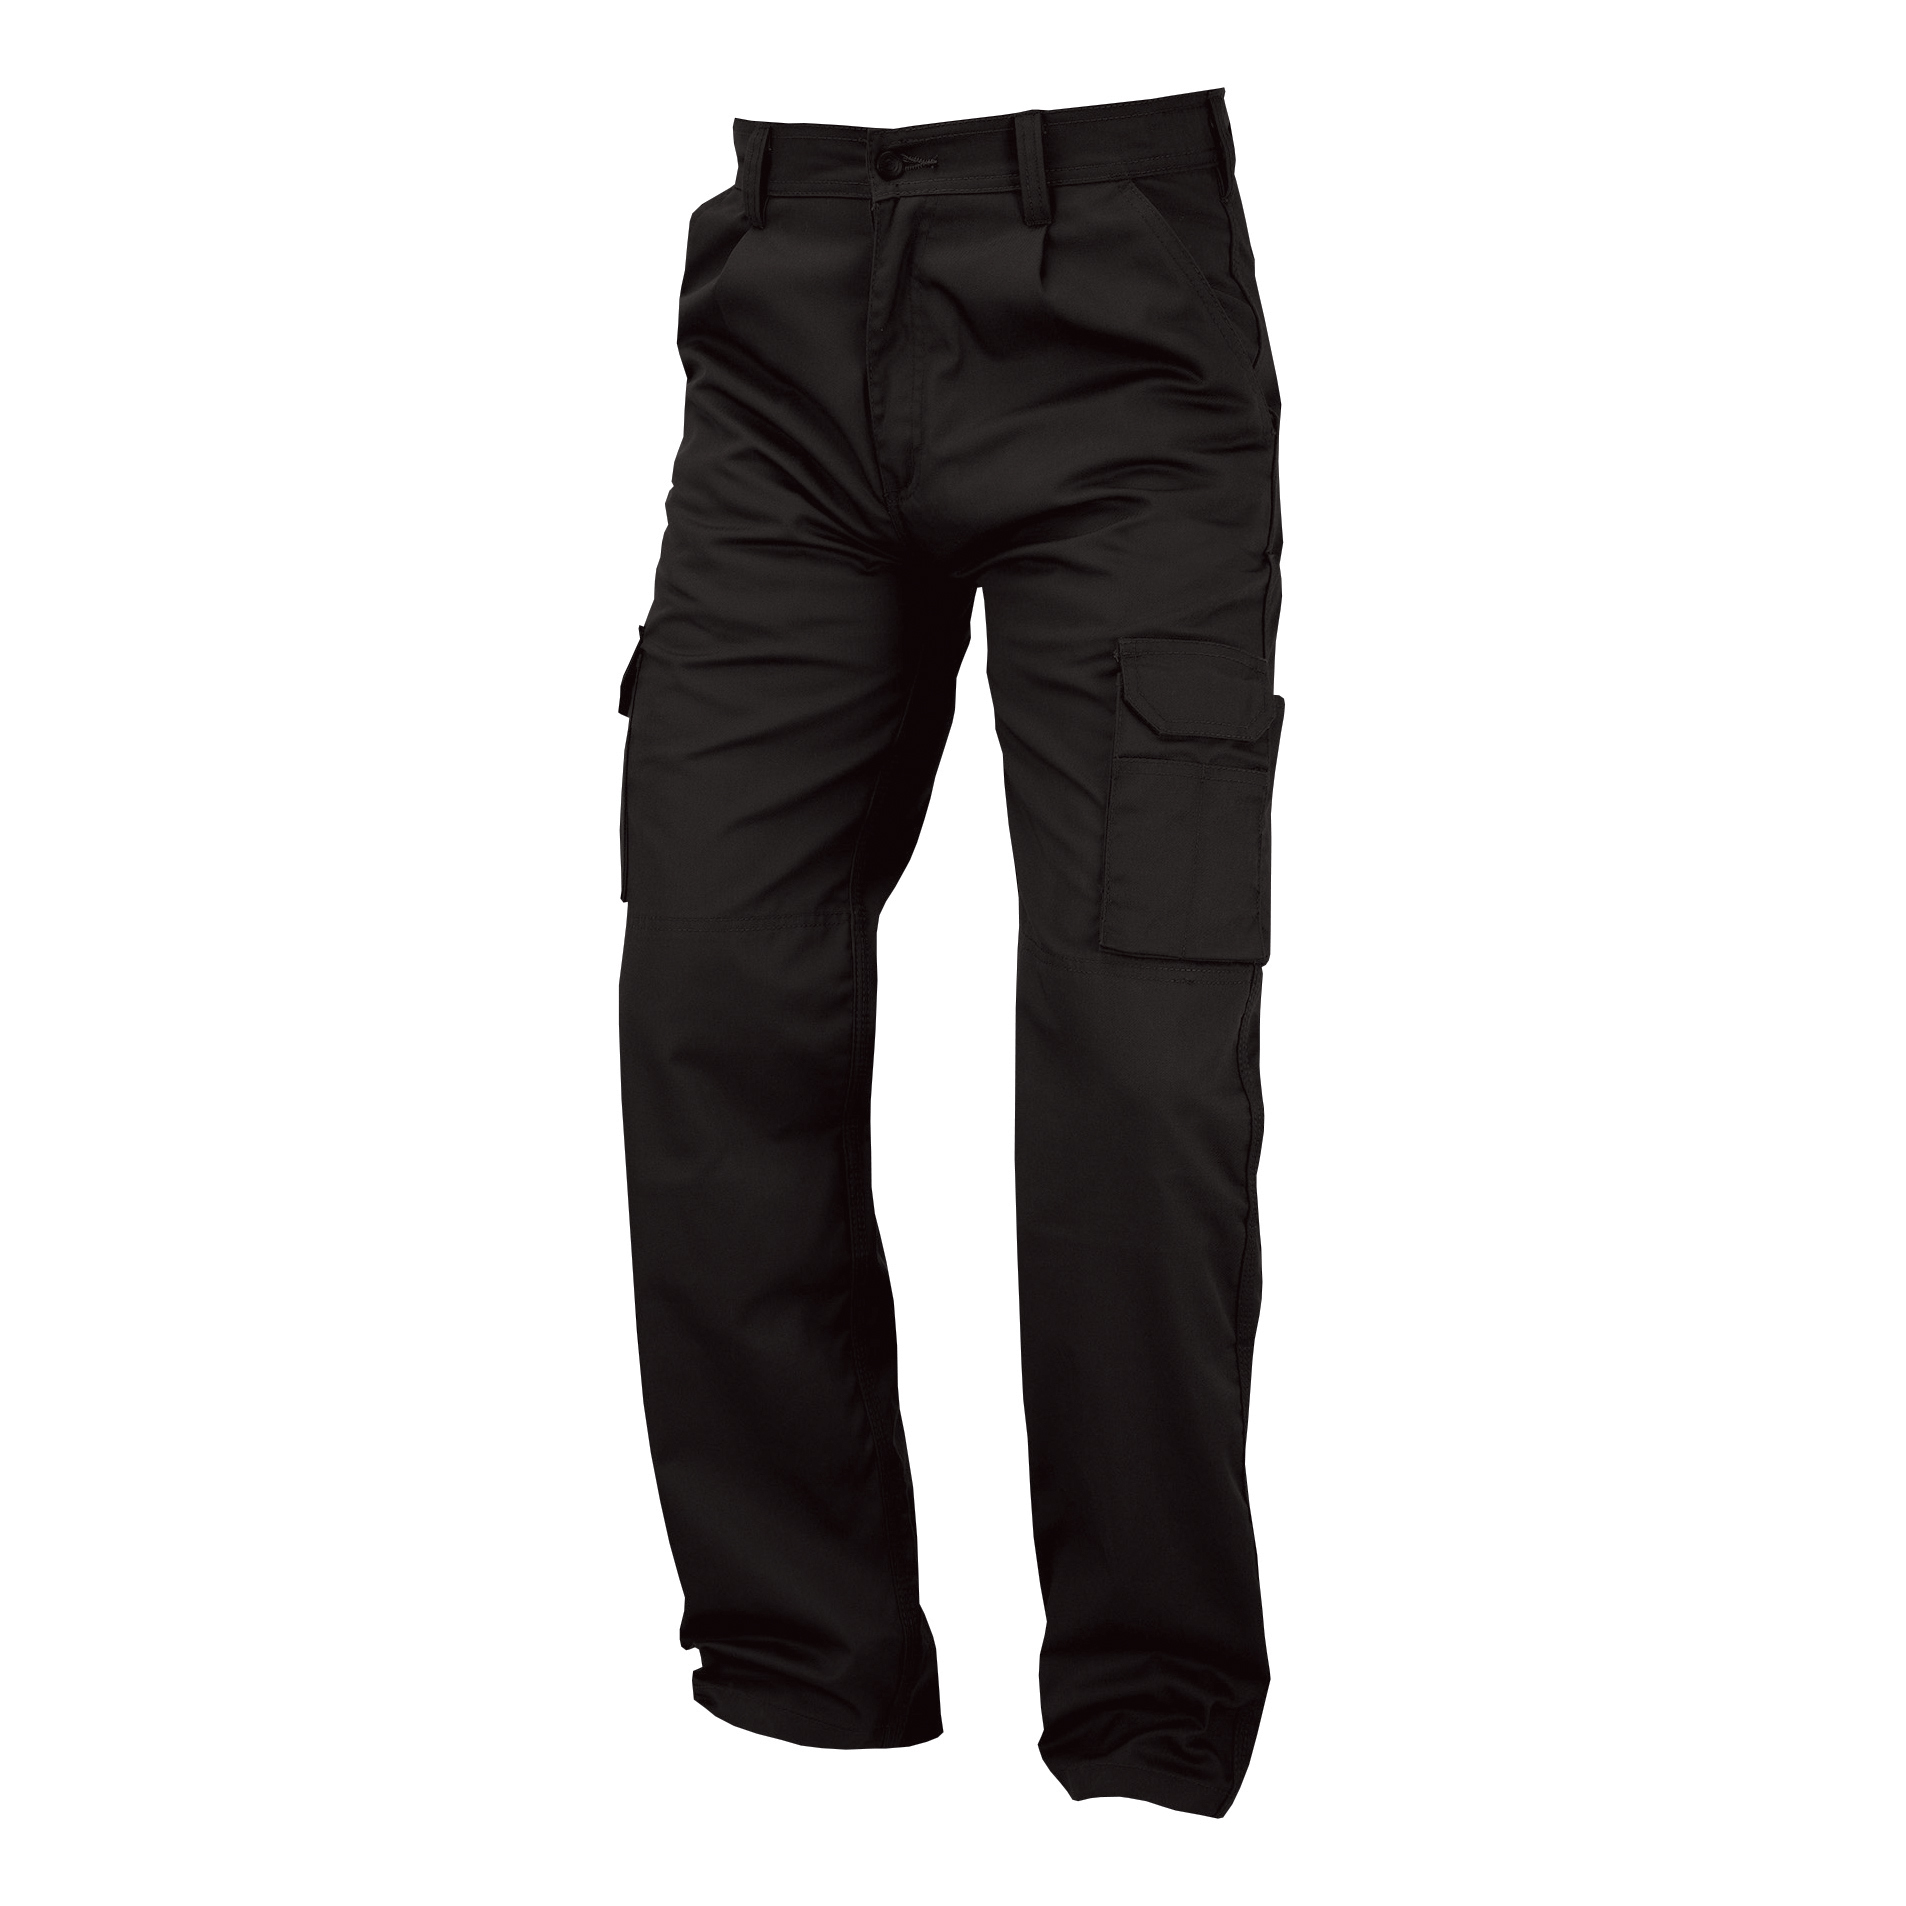 Combat / Cargo Combat Trousers Polycotton with Pockets 34in Regular Black Ref PCTHWBL34 *1-3 Days Lead Time*